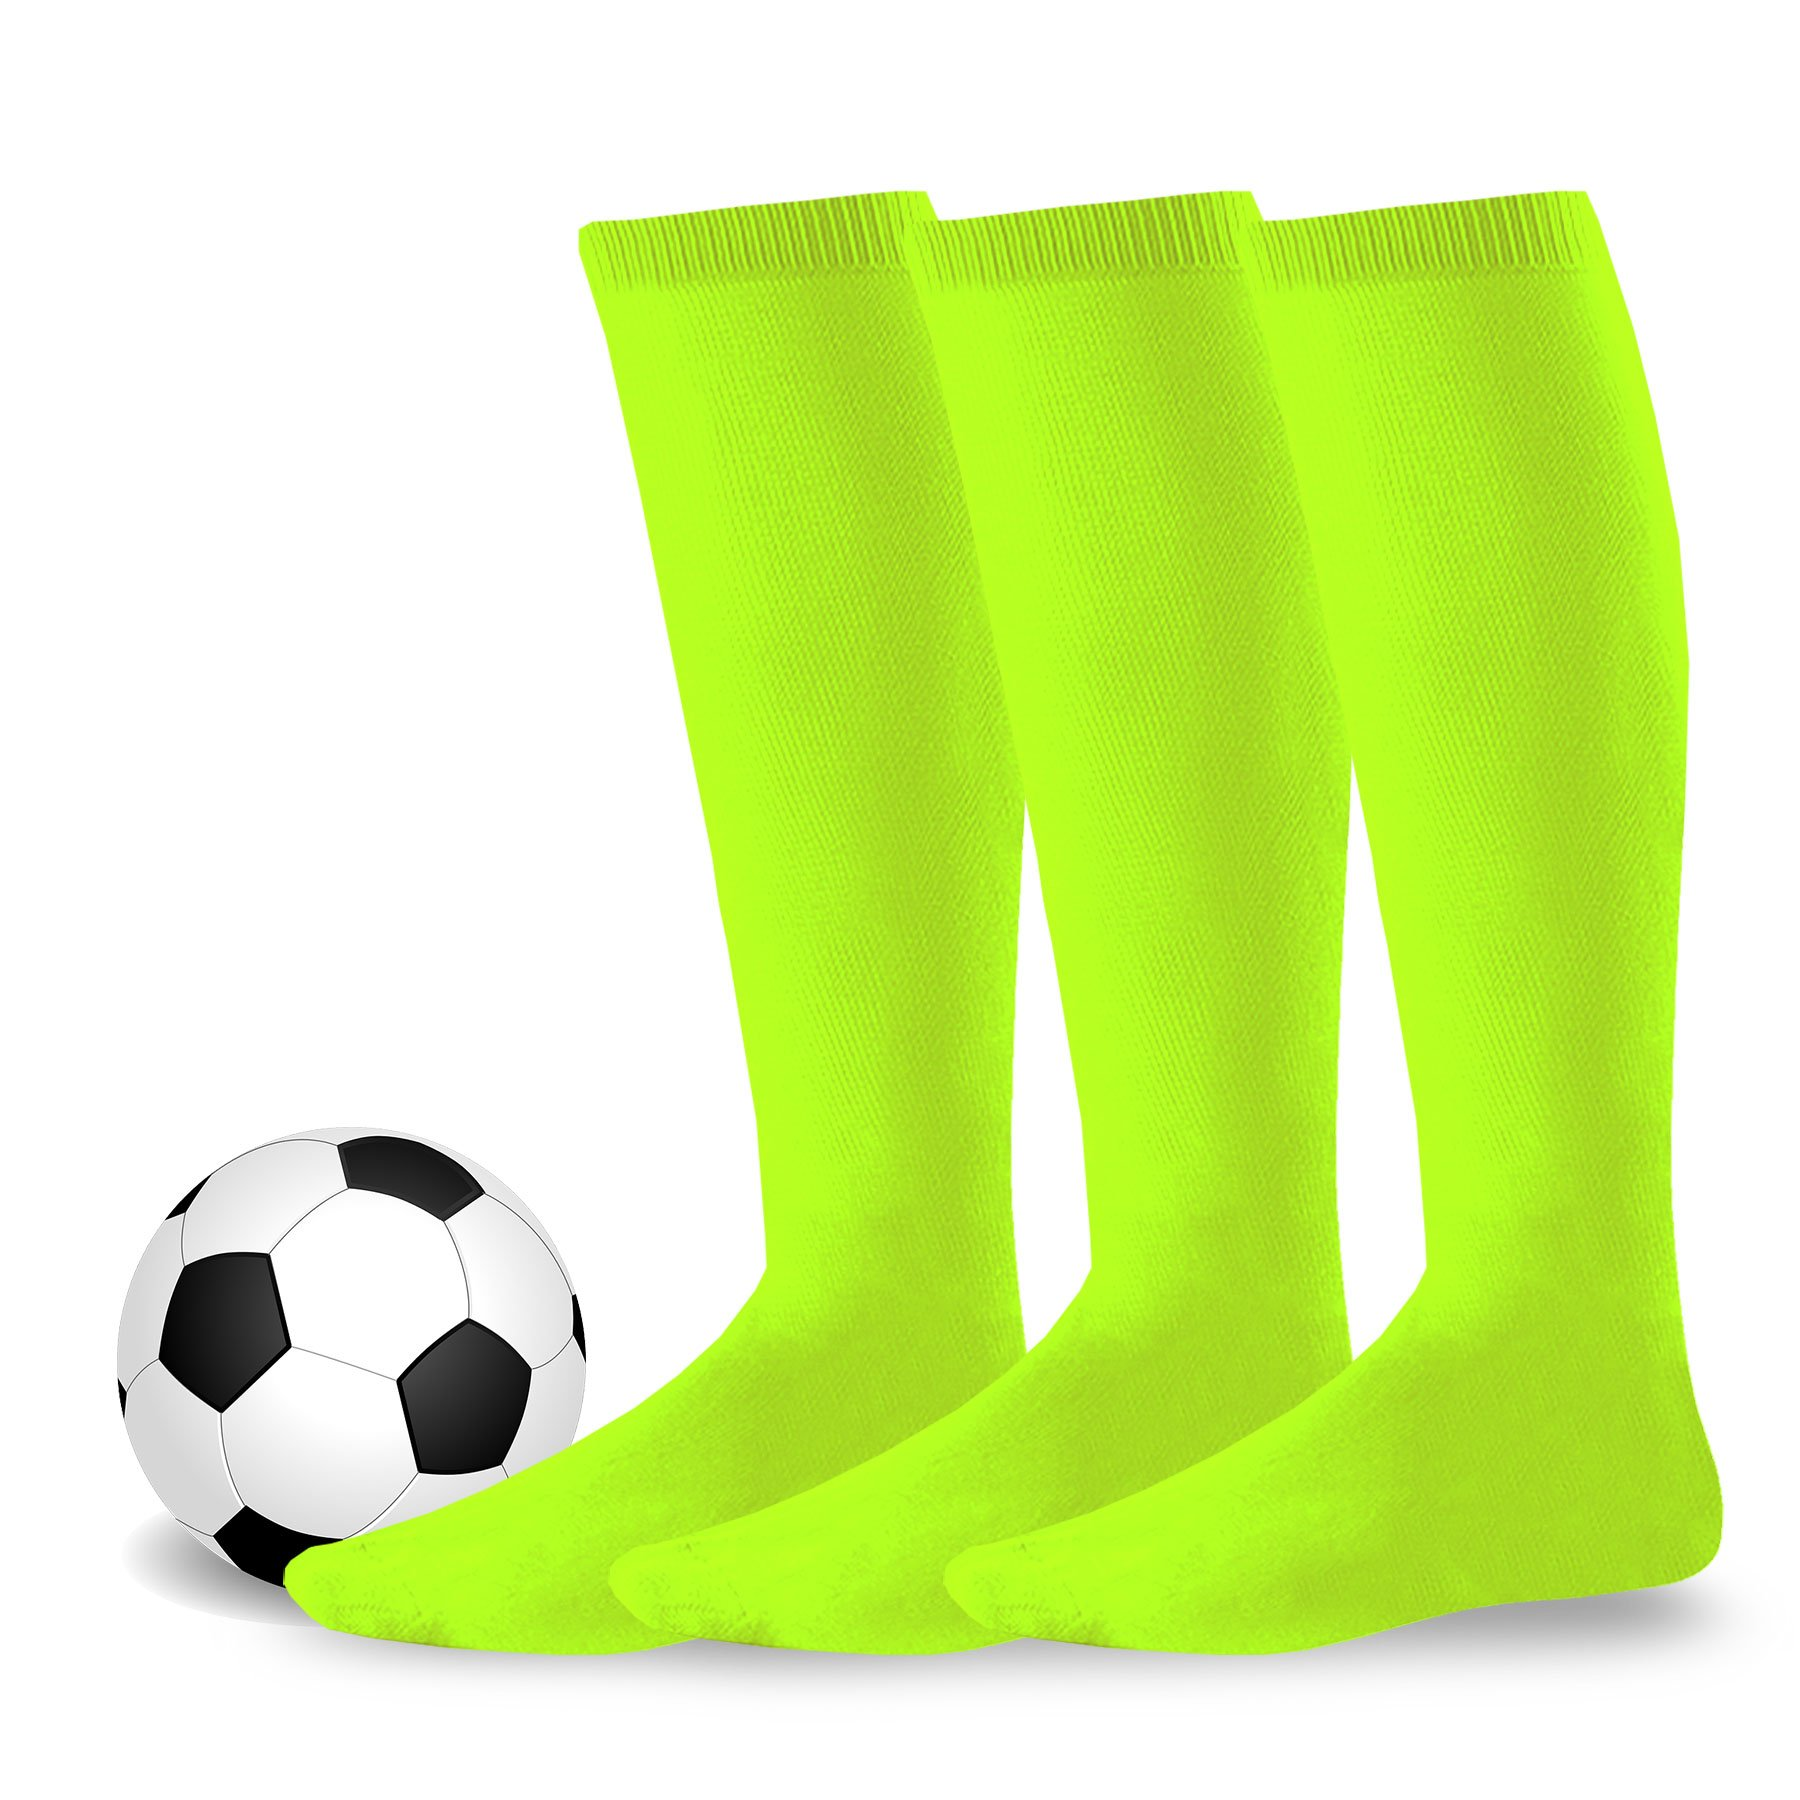 Soxnet Acrylic Unisex Soccer Sports Team Cushion Socks 3 Pack (Youth (5-7), Neon Green)